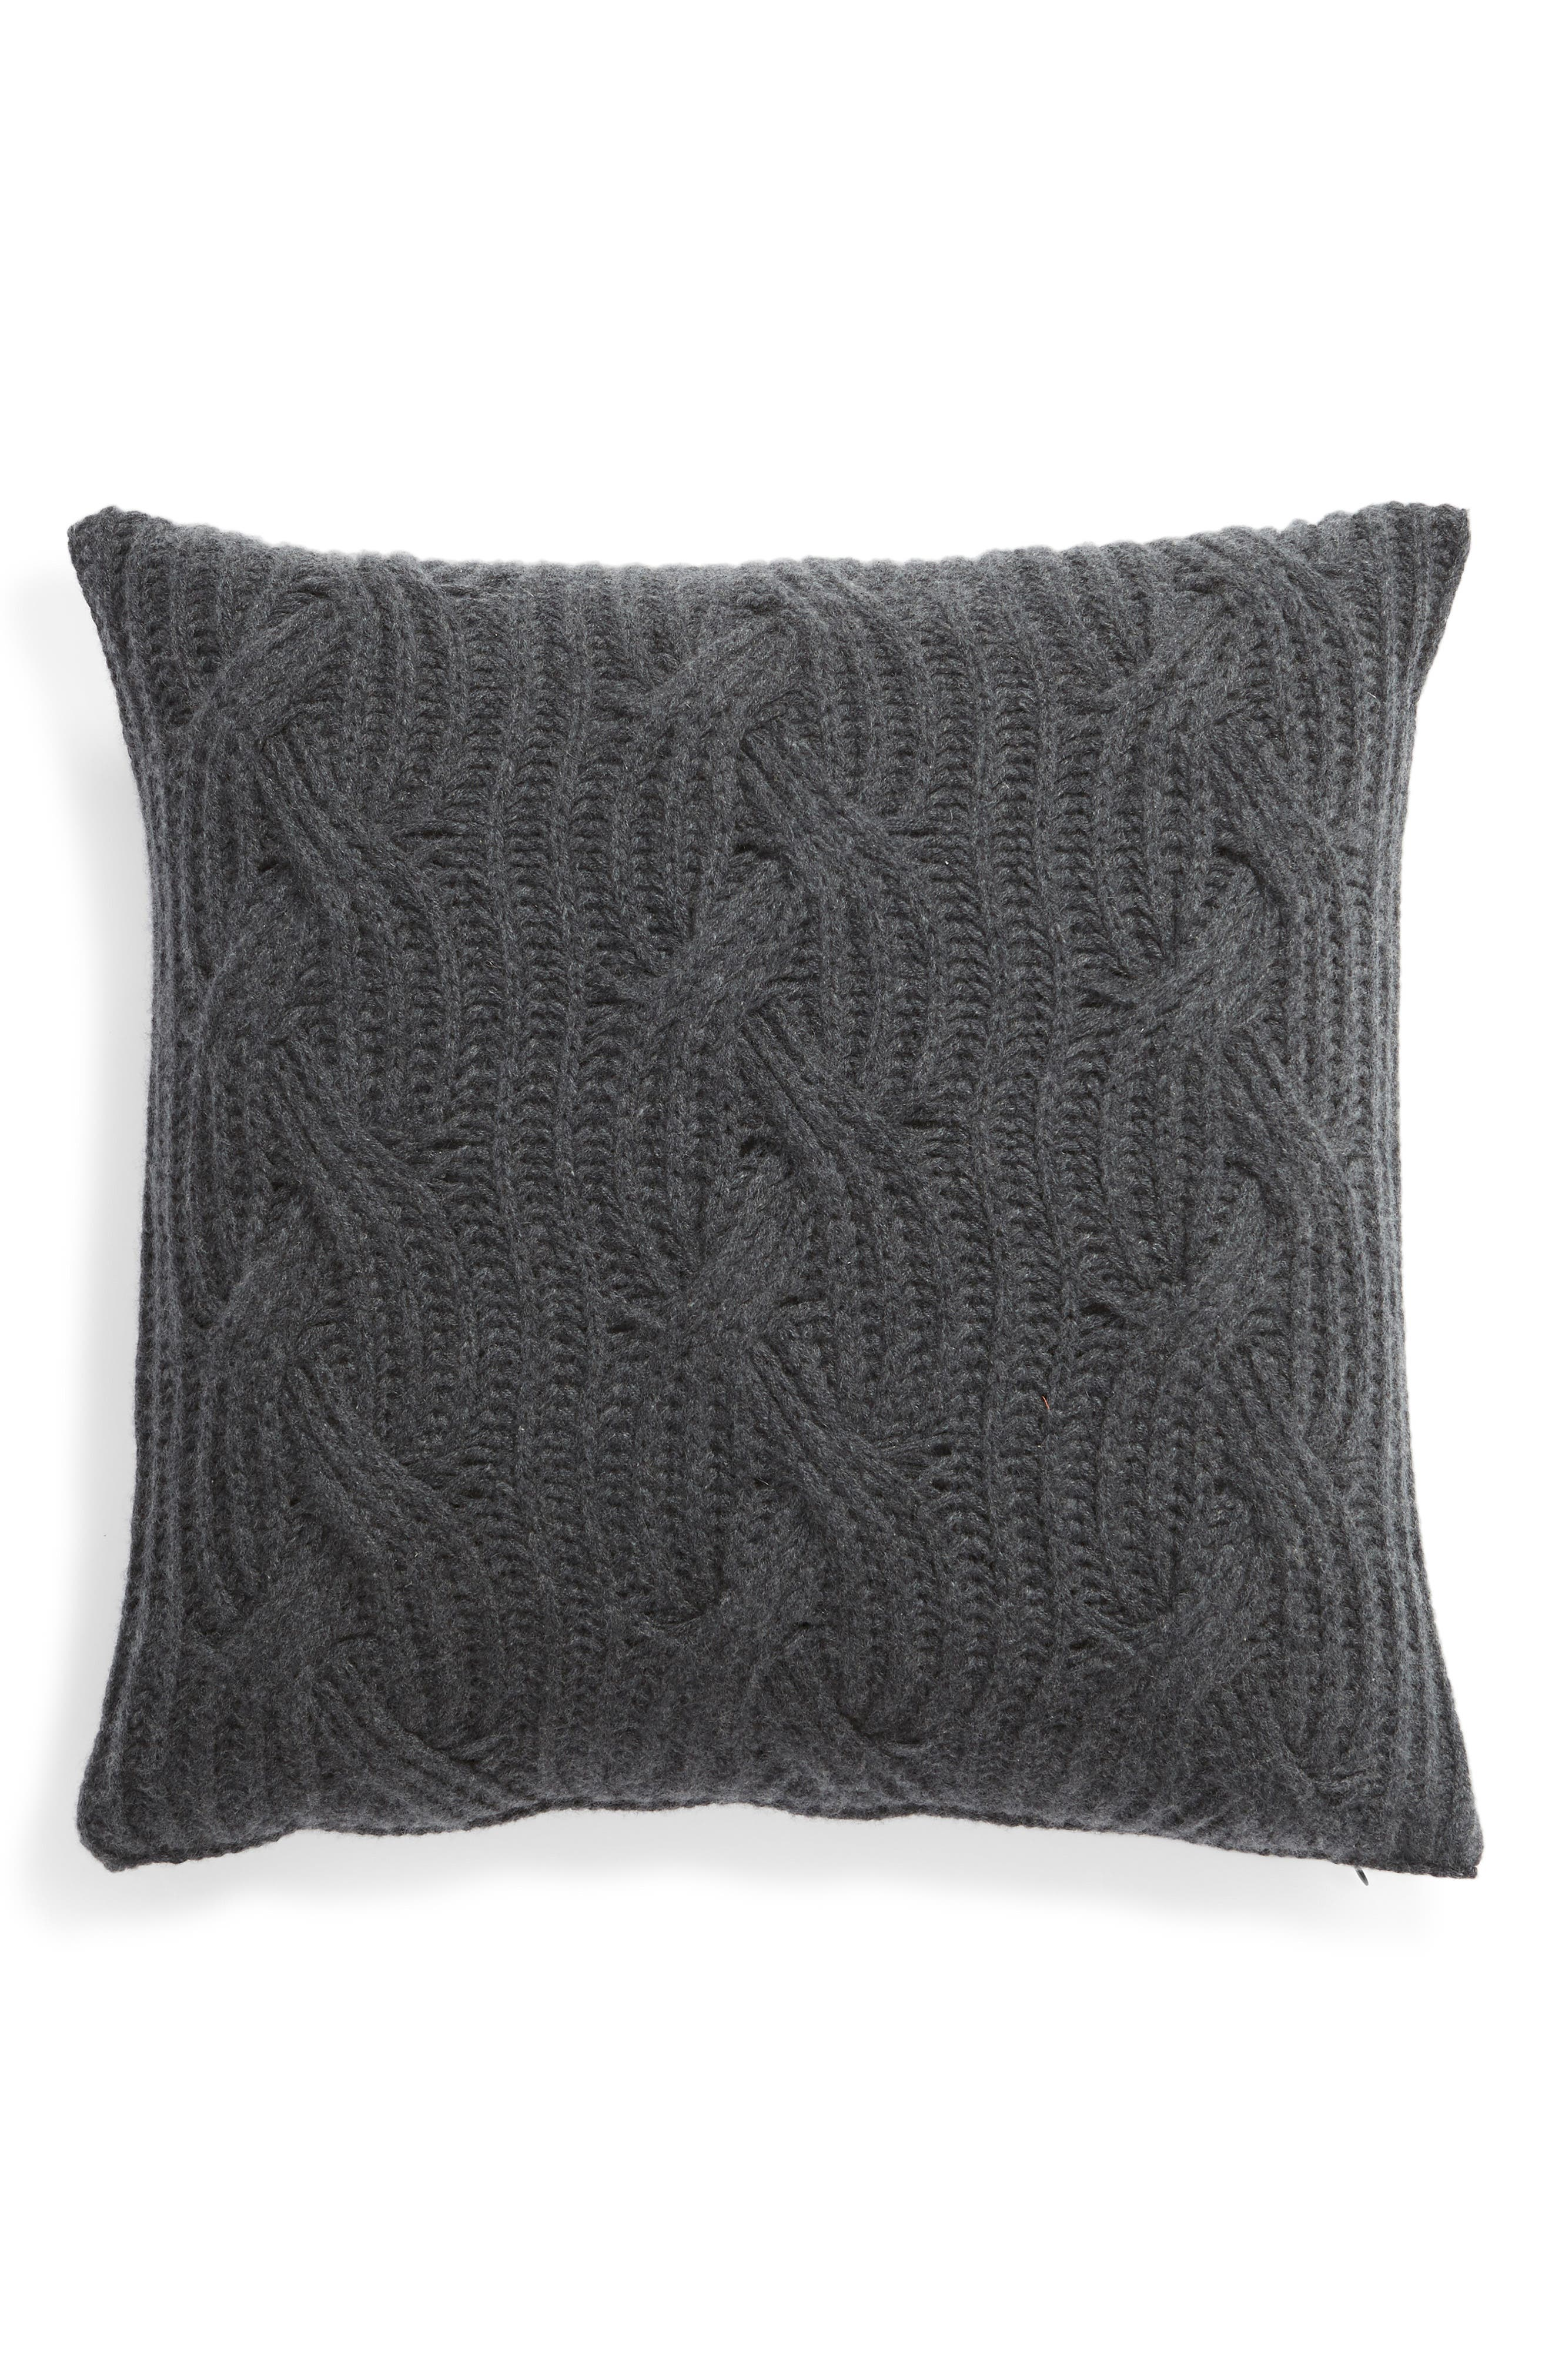 NORDSTROM SIGNATURE, Cable Knit Cashmere Accent Pillow, Main thumbnail 1, color, CHARCOAL HEATHER